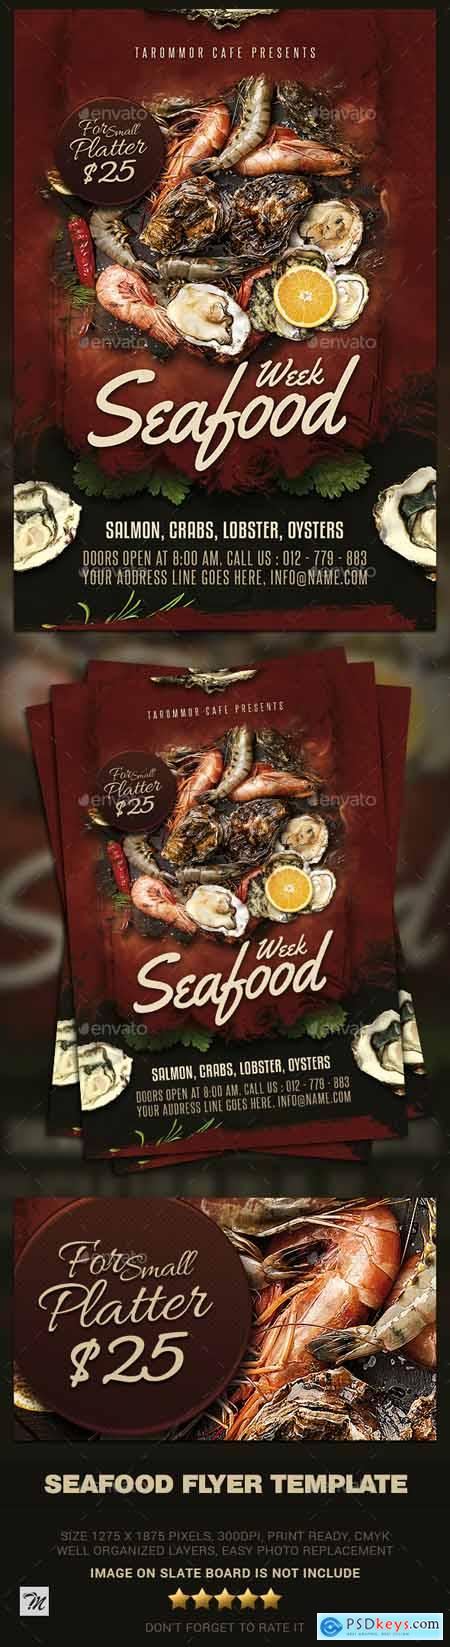 Seafood Flyer Template 24092695